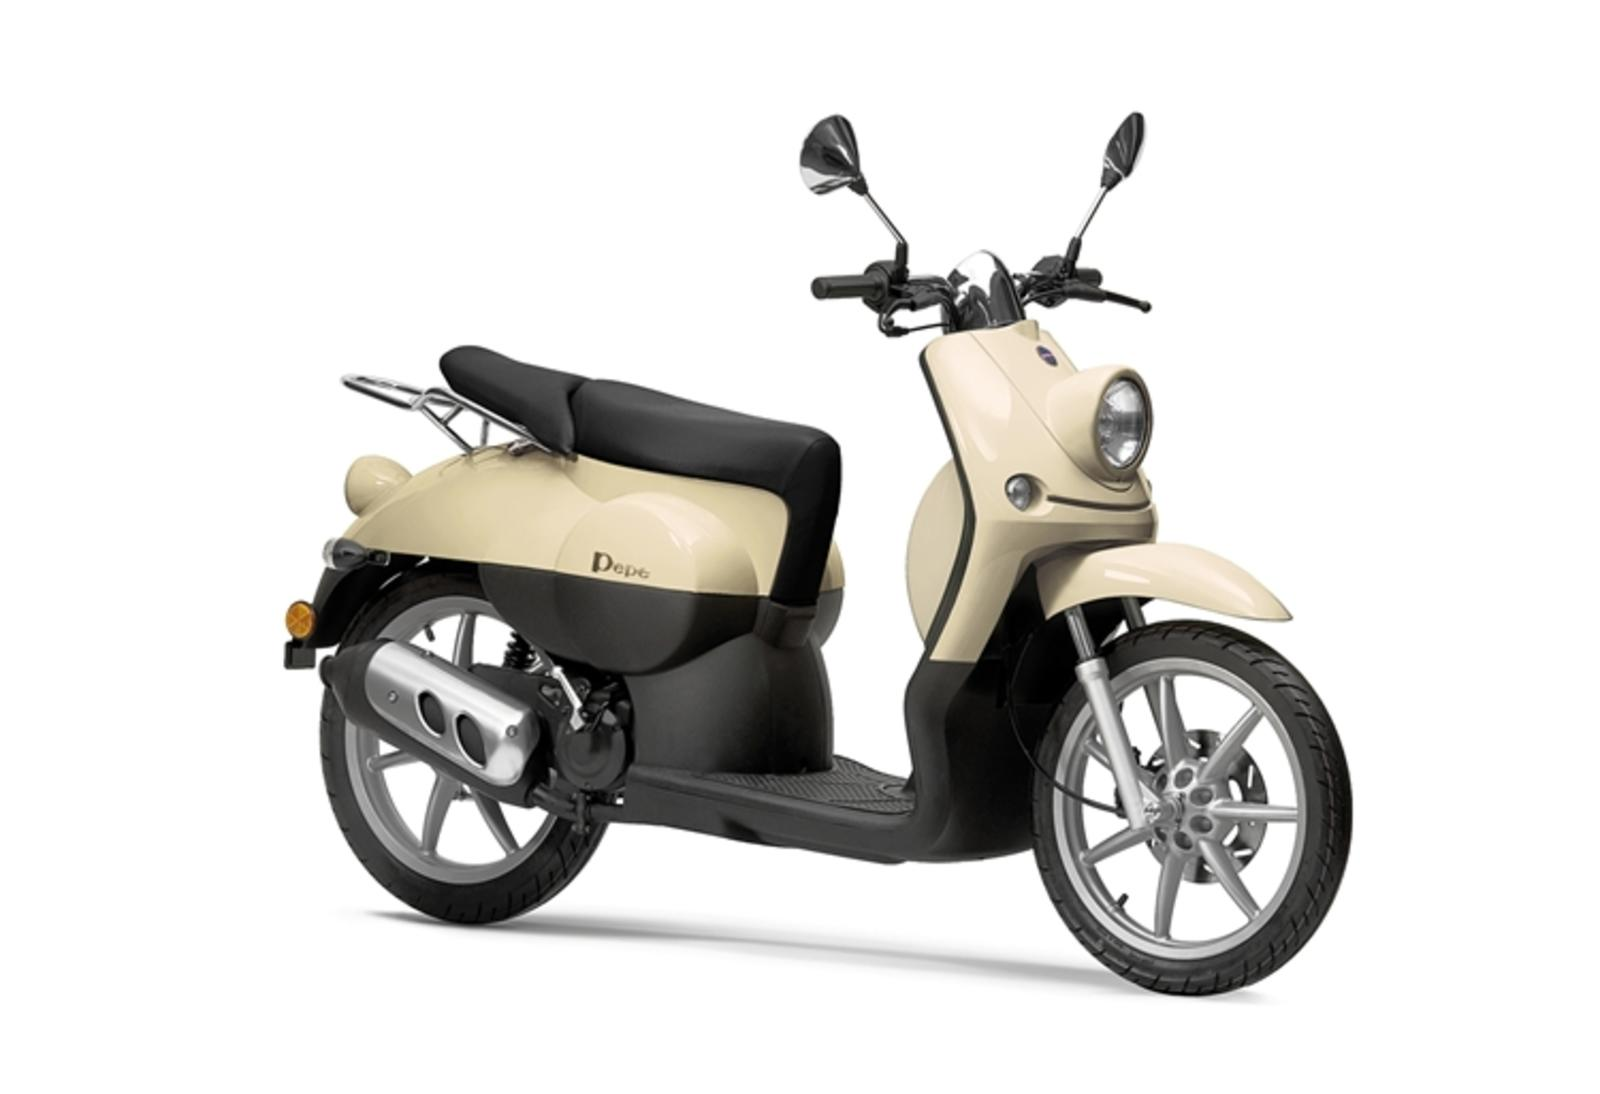 2013 benelli pepe 50 classic 2t review top speed. Black Bedroom Furniture Sets. Home Design Ideas